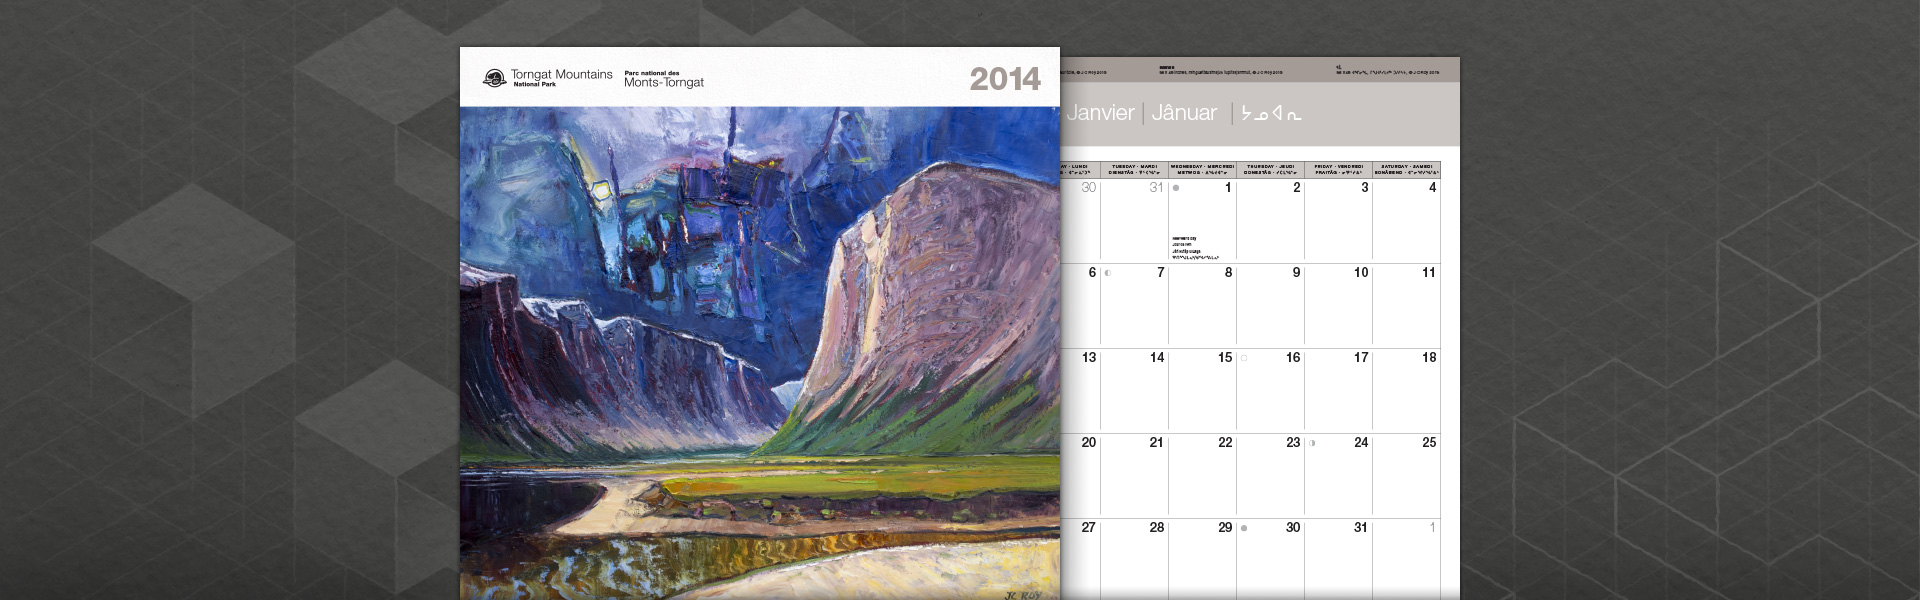 Torngat Mountains National Park 2015 calendar